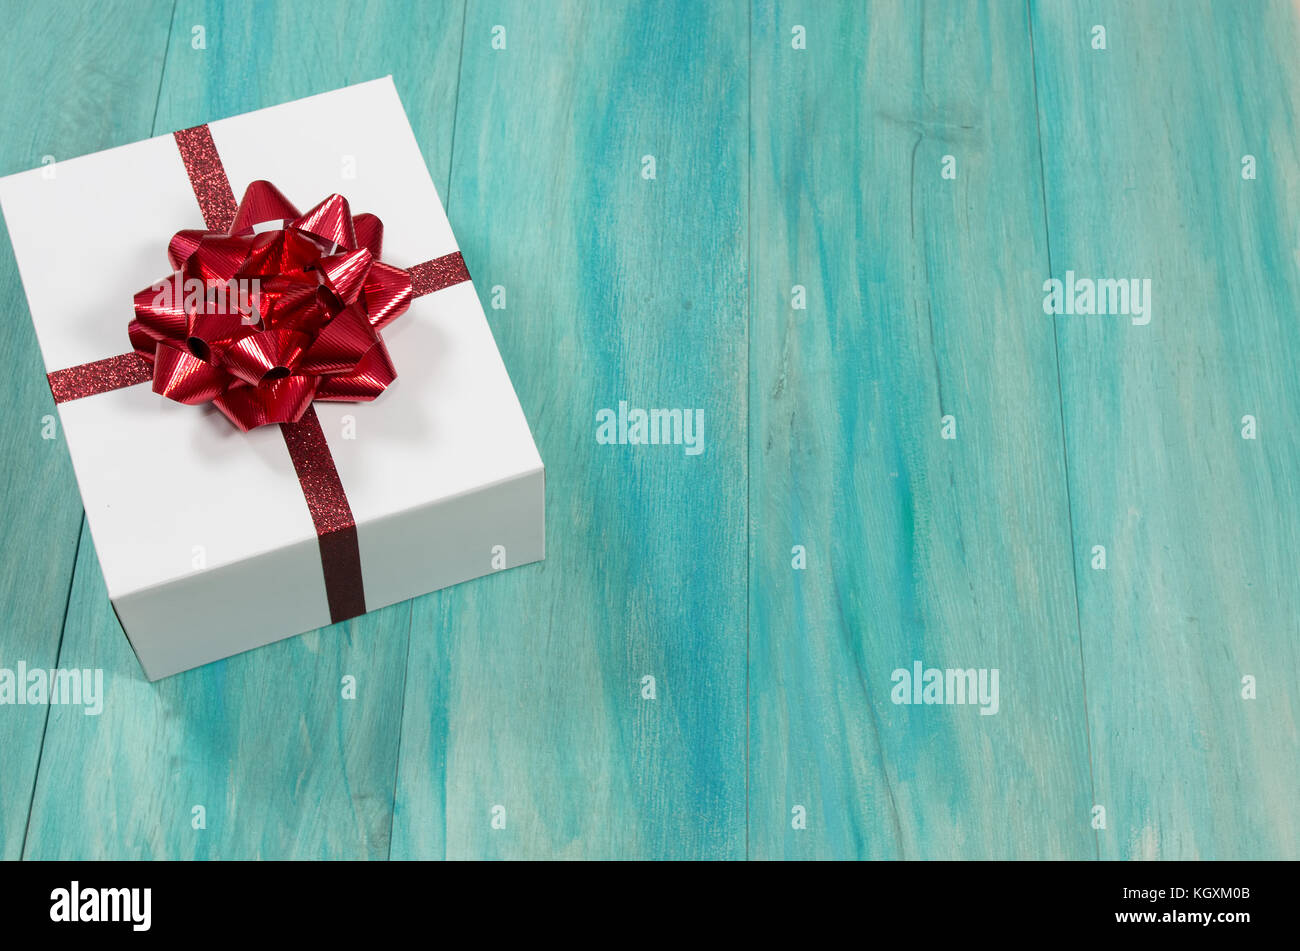 Single Christmas present with red bow on a distressed teal wood background - Stock Image